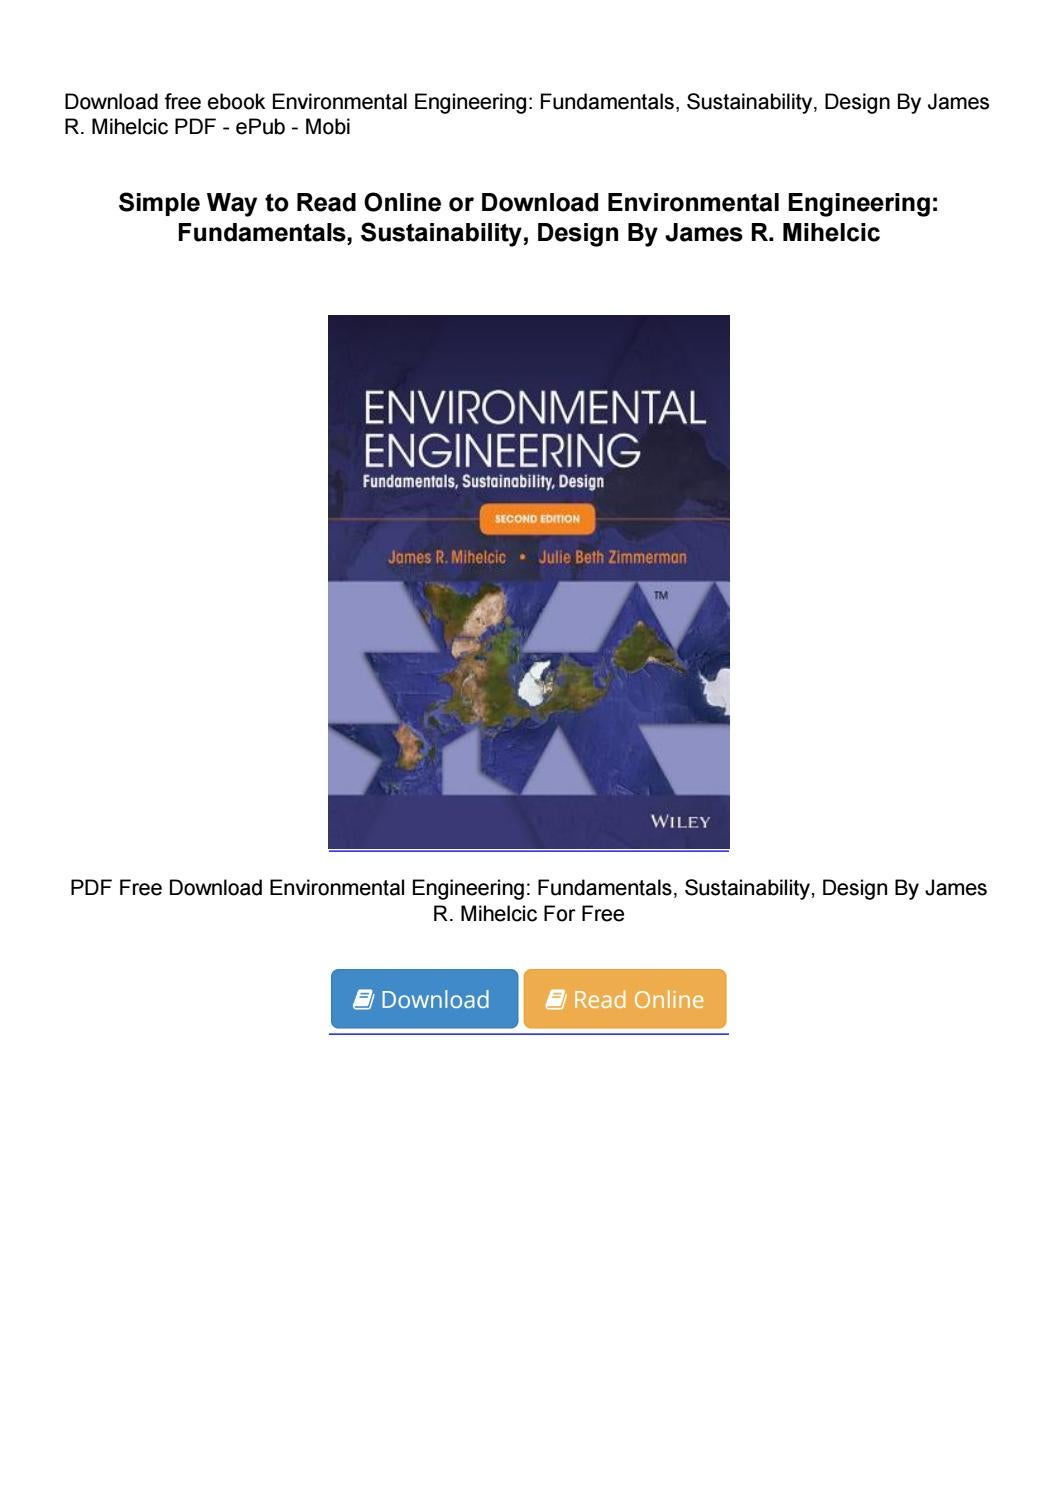 Download Environmental Engineering Fundamentals Sustainability Design By James R Mihelcic By Murdanidfgh68 Fwgrwdee275 Issuu